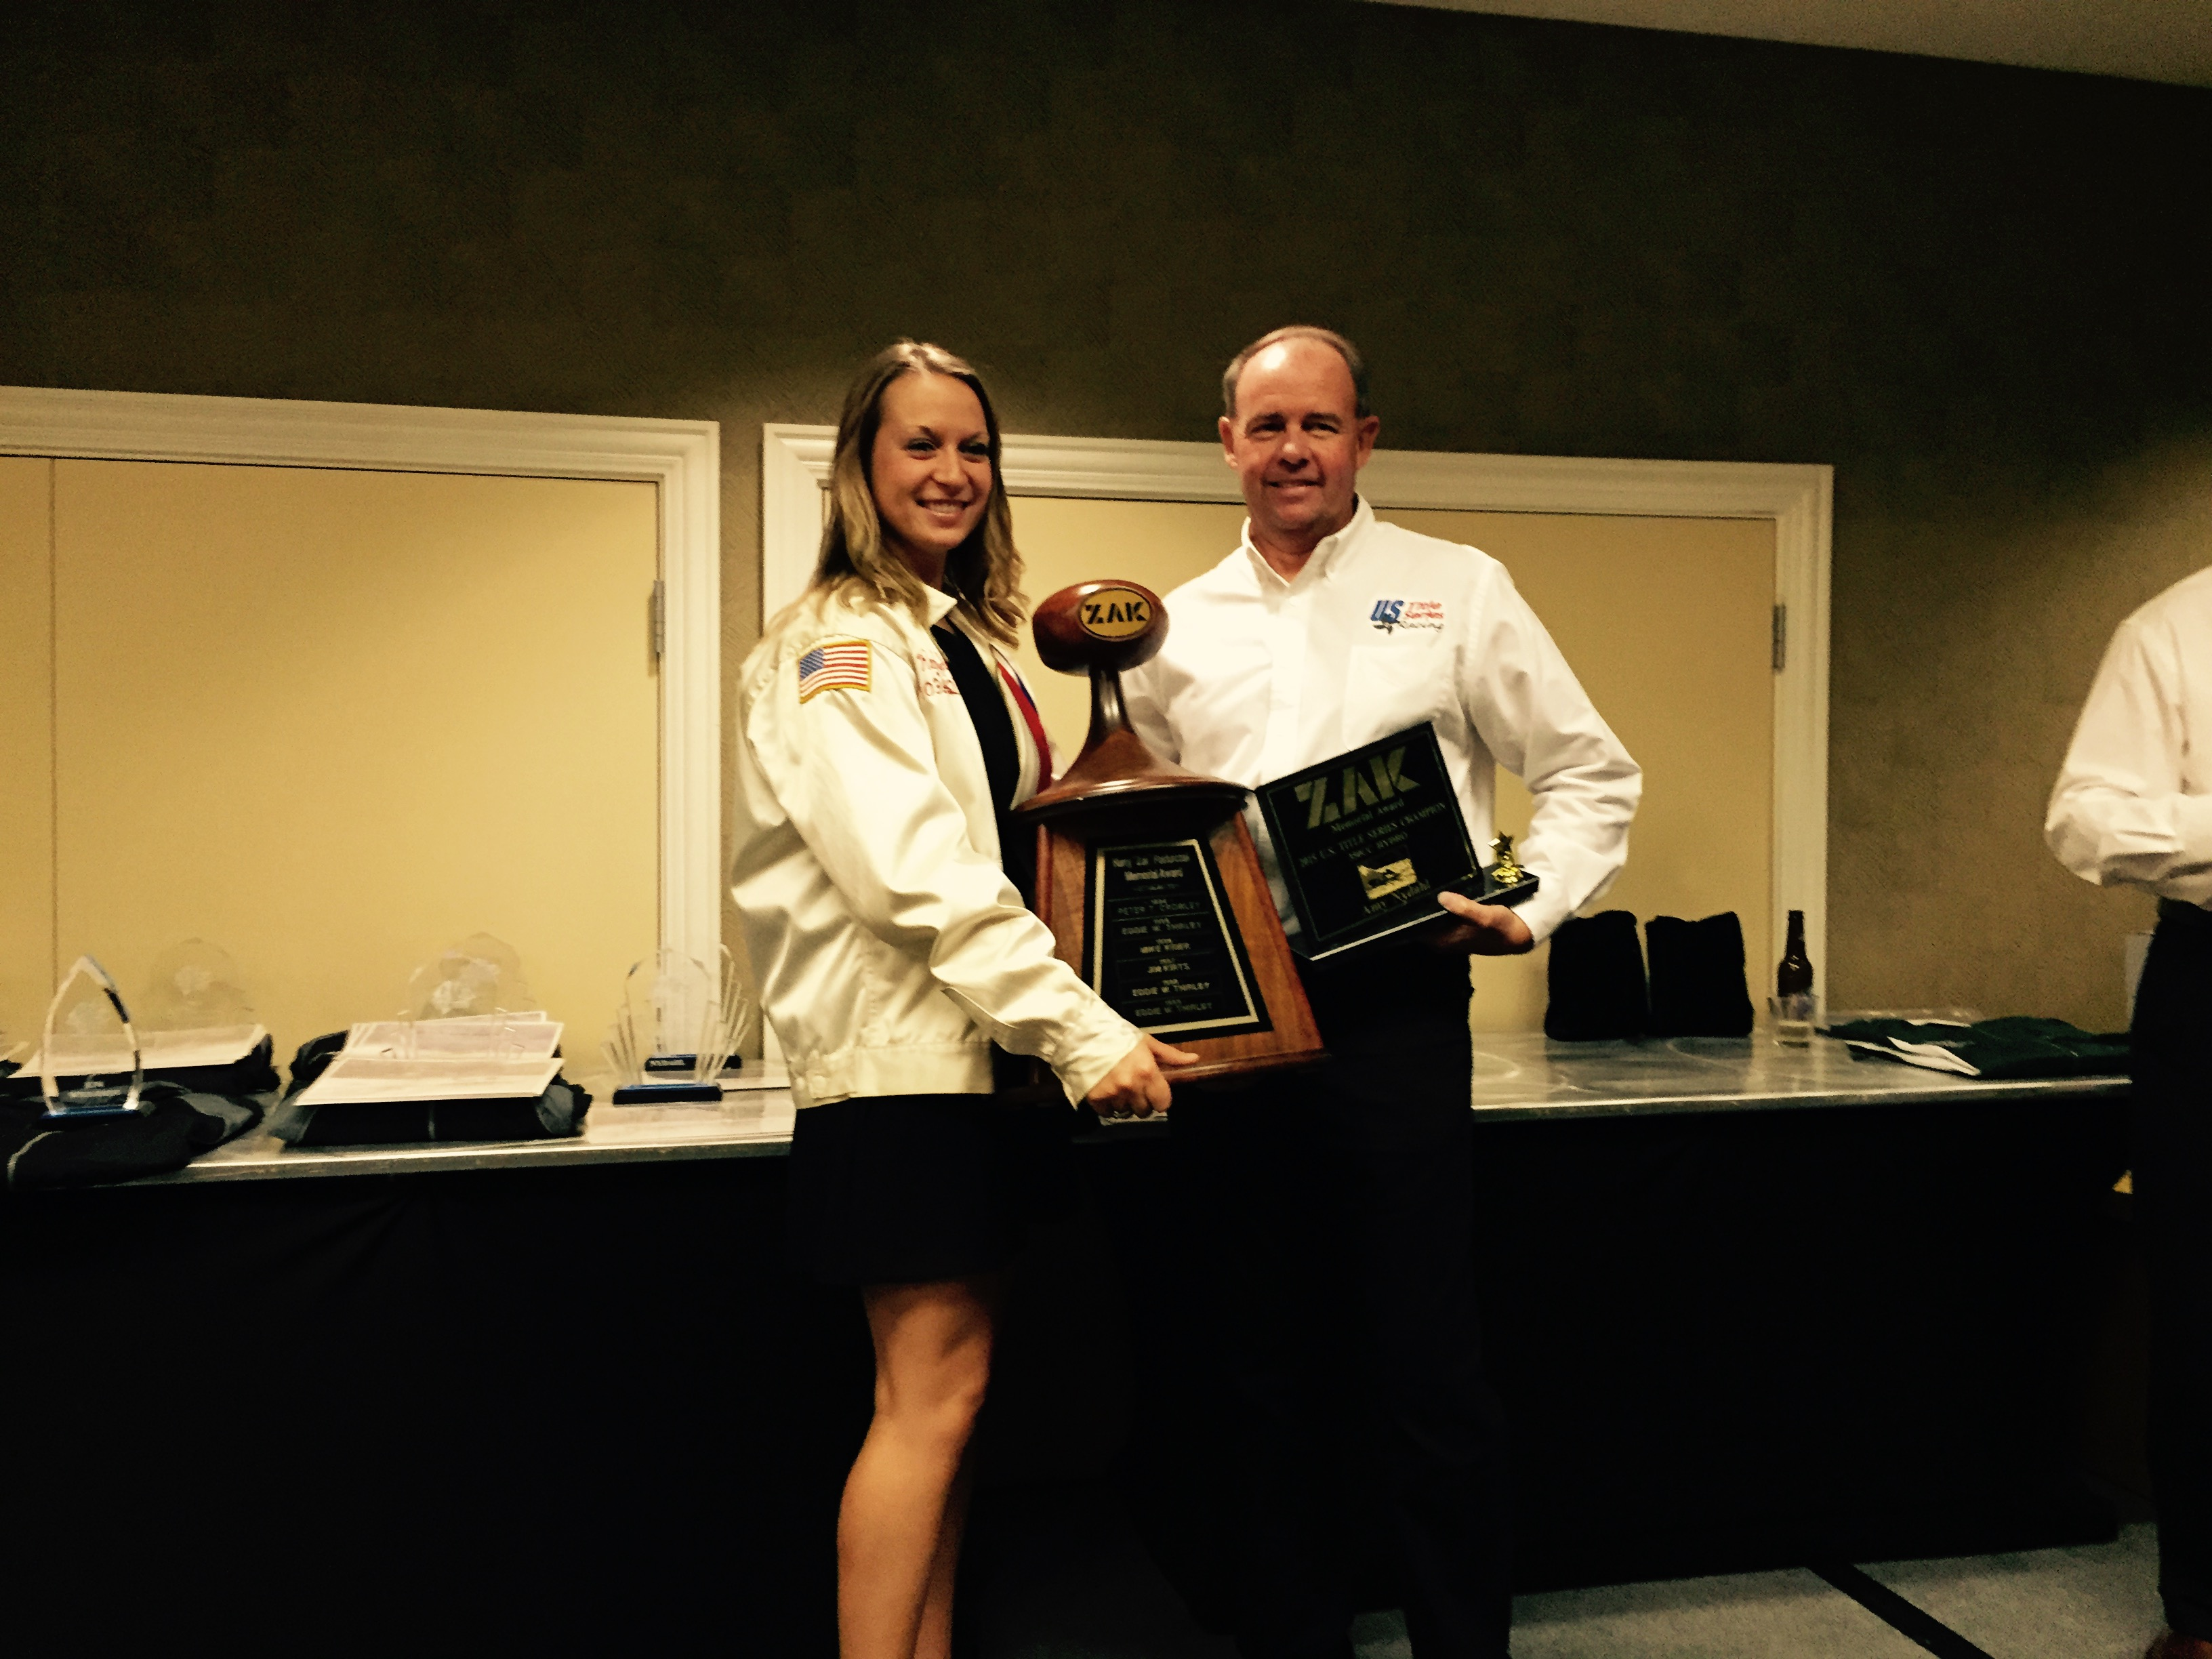 Amy accepting the Zak award from Todd Brinkman at the Title Series meeting